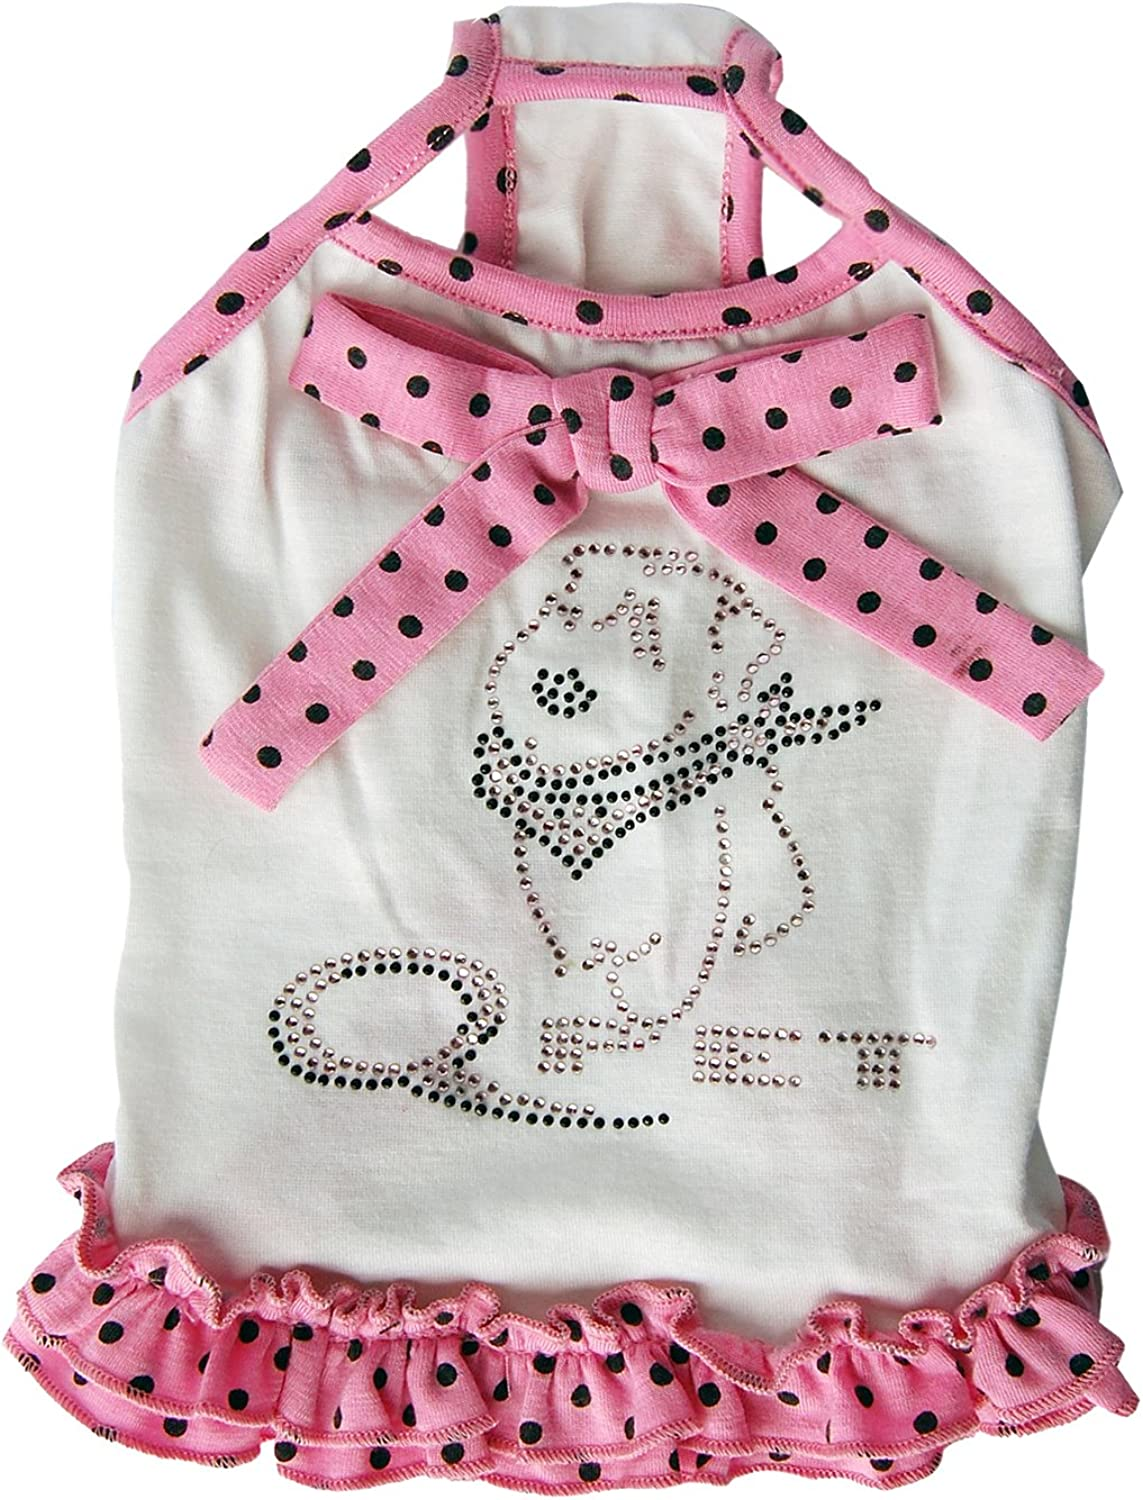 Anima White with Pink and Black Polka Dot Trim Sundress, Small